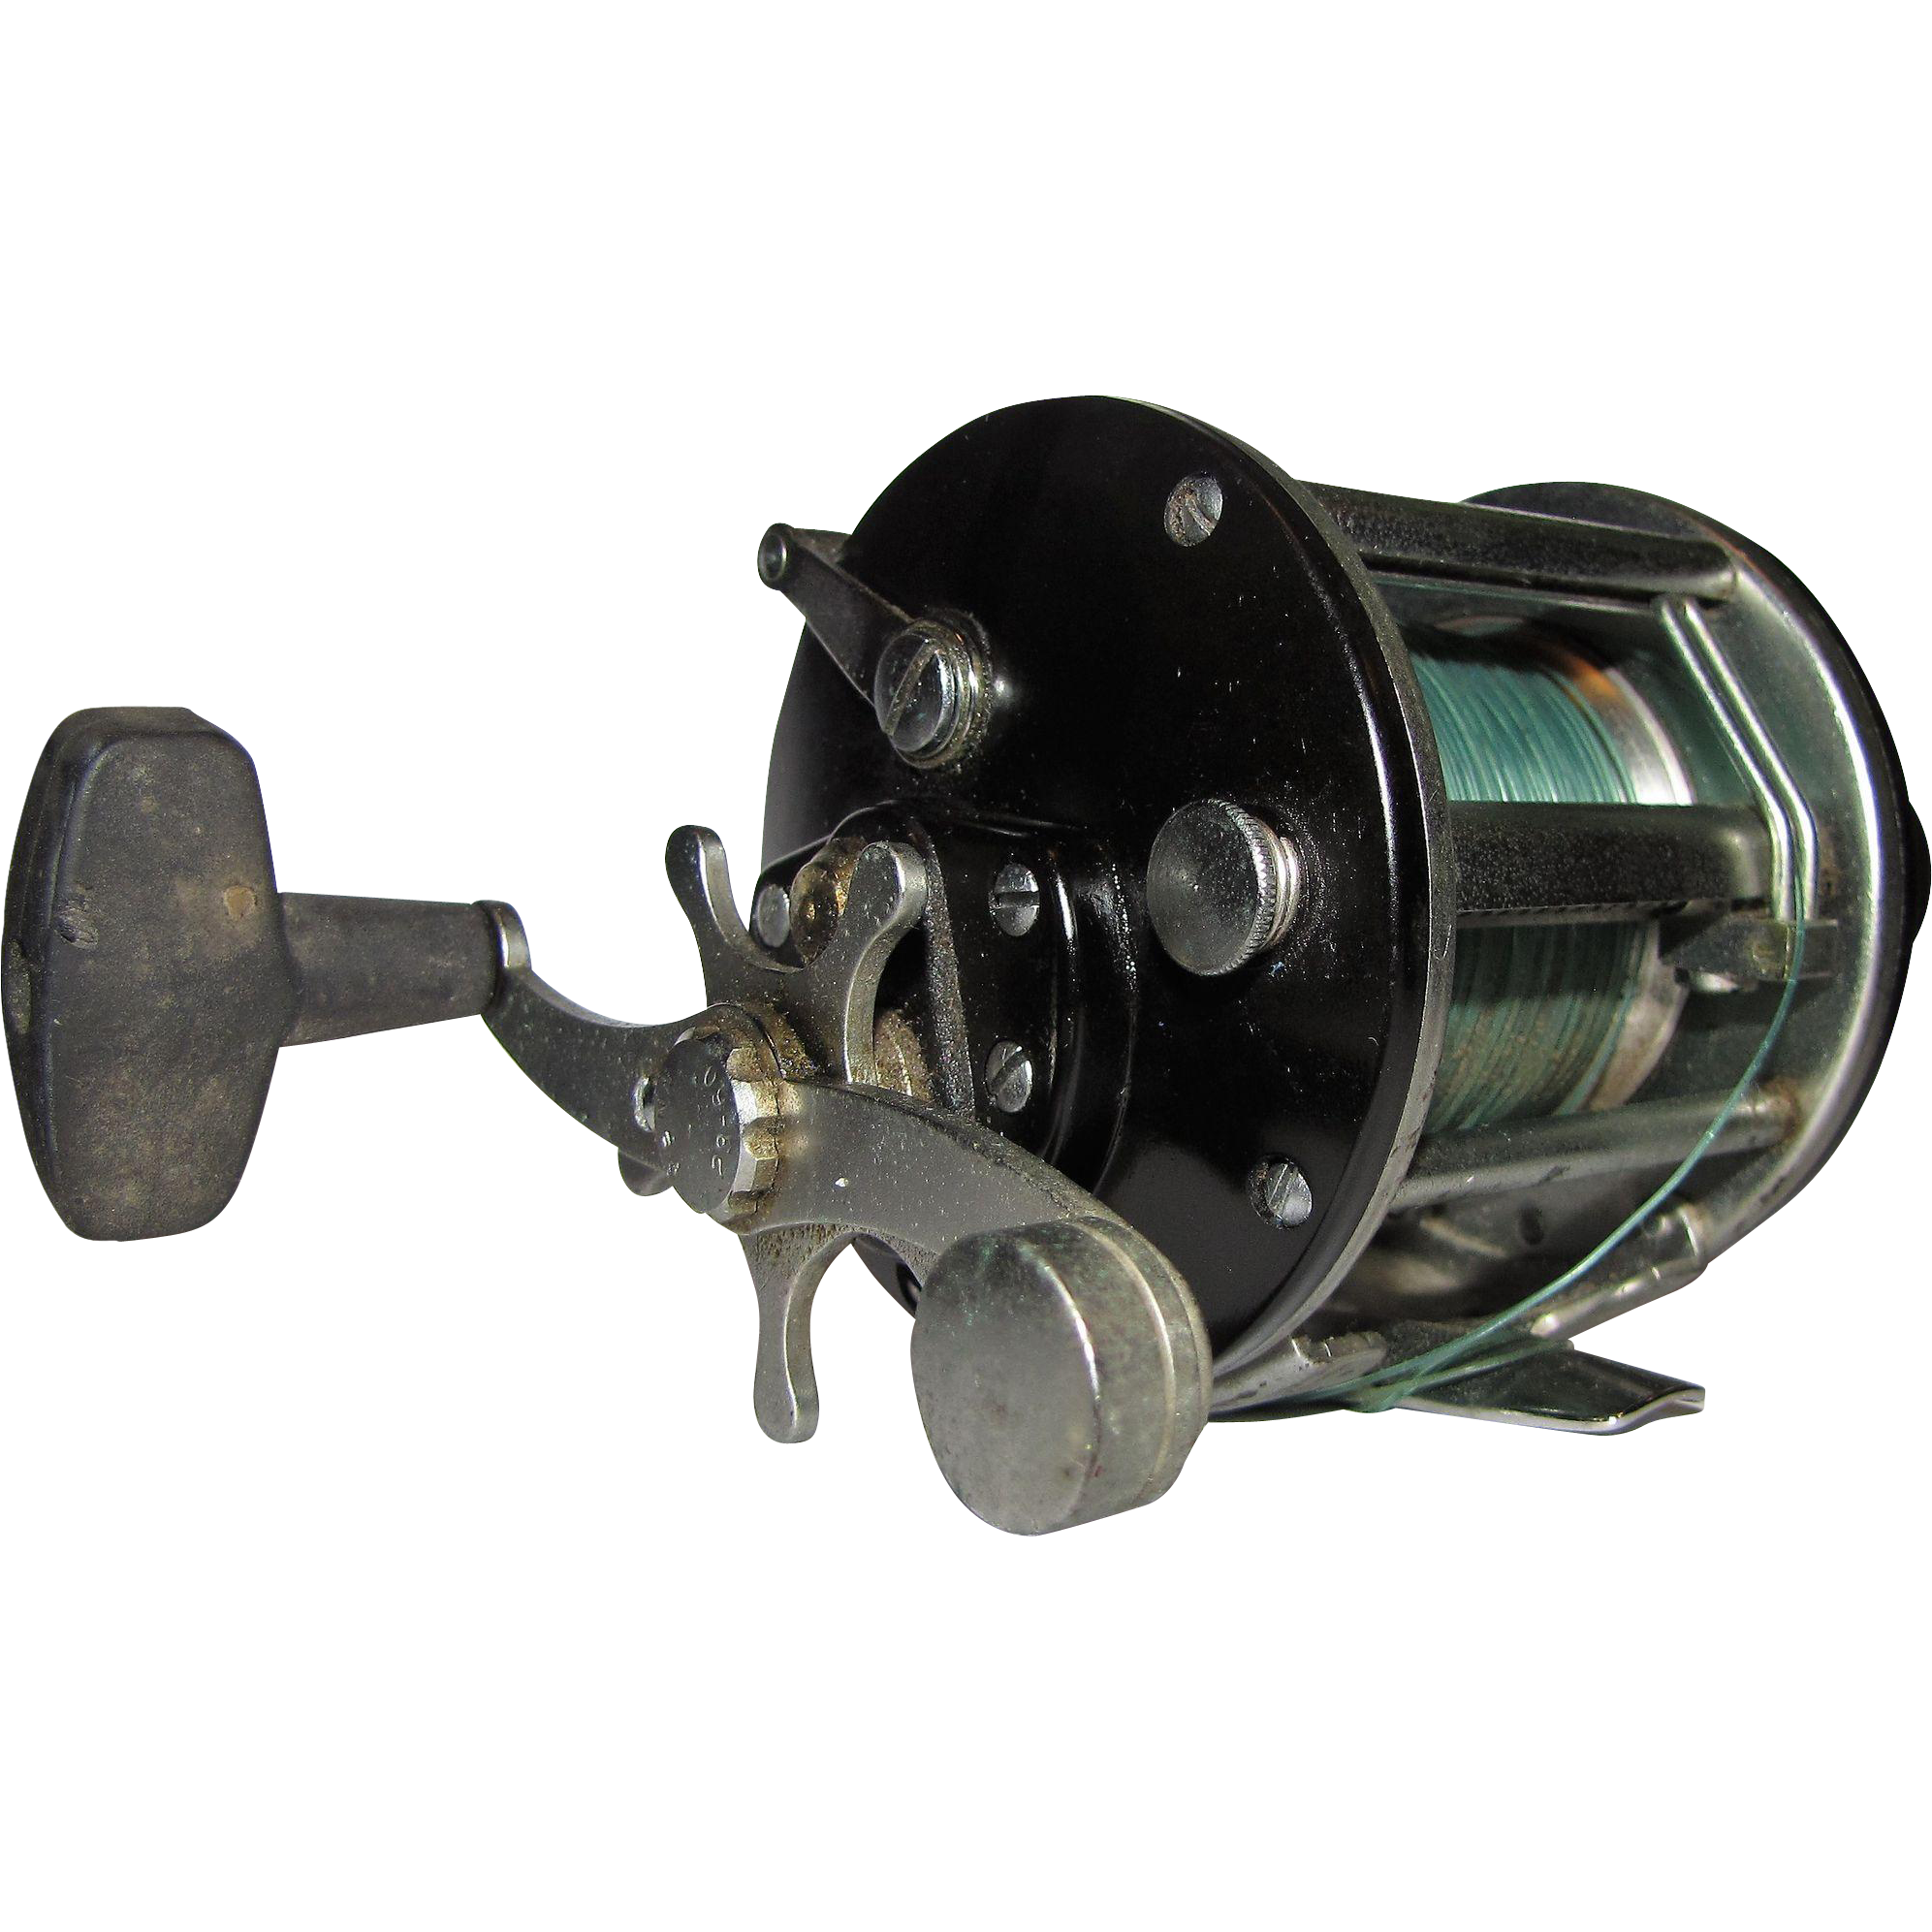 Penn 209 level wind fishing reel made in usa fay wray for American made fishing reels